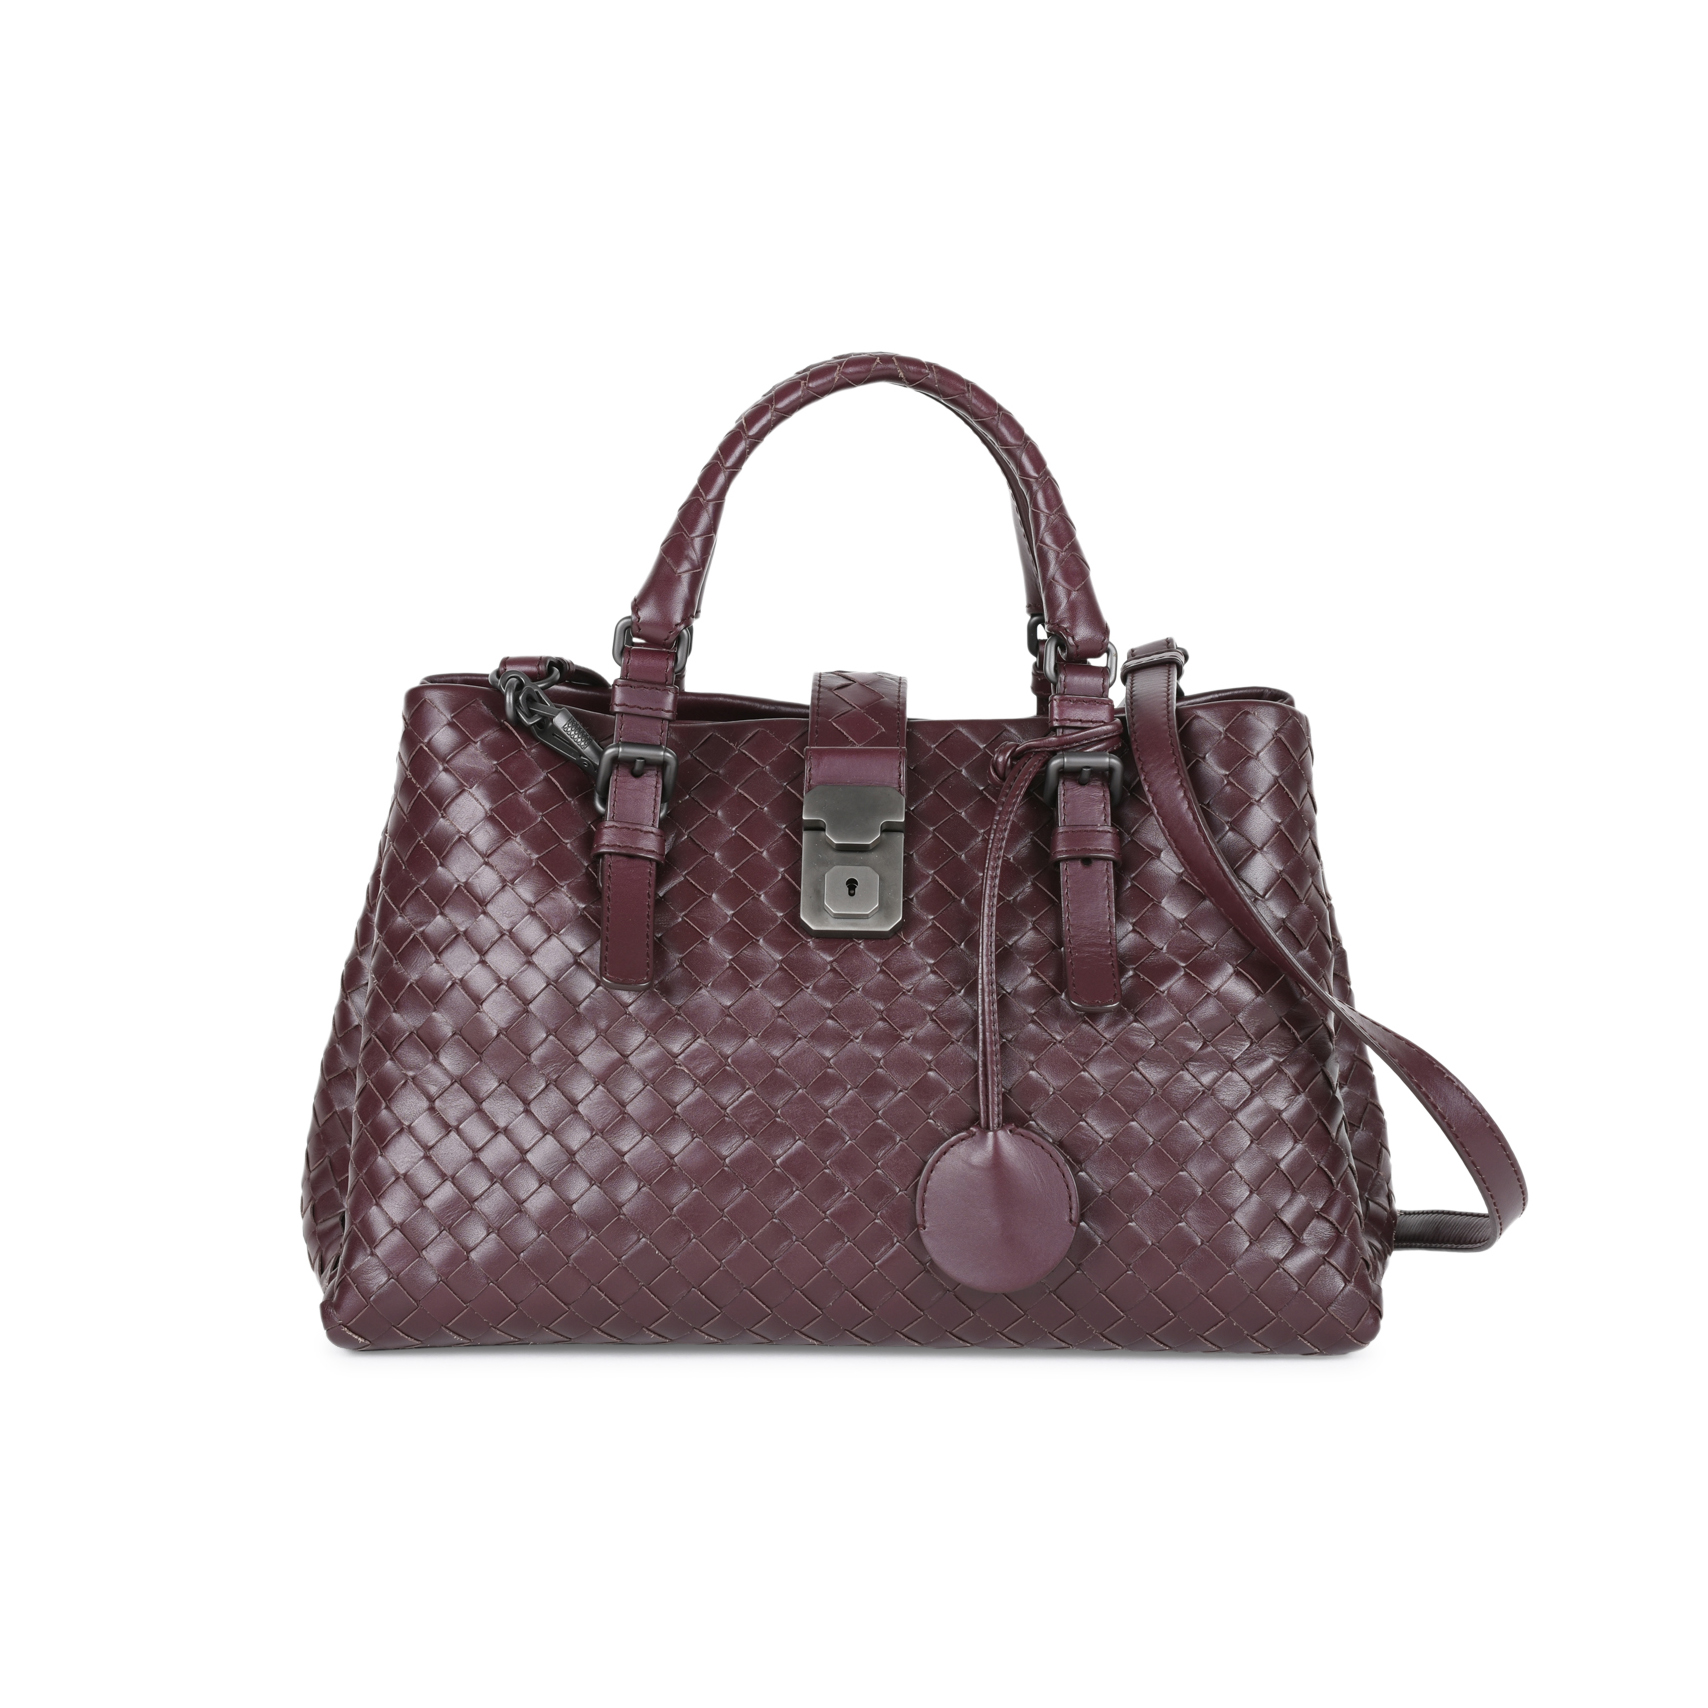 1a43b634d8 Authentic Second Hand Bottega Veneta Medium Roma Intrecciato Leather Tote  (PSS-444-00011)